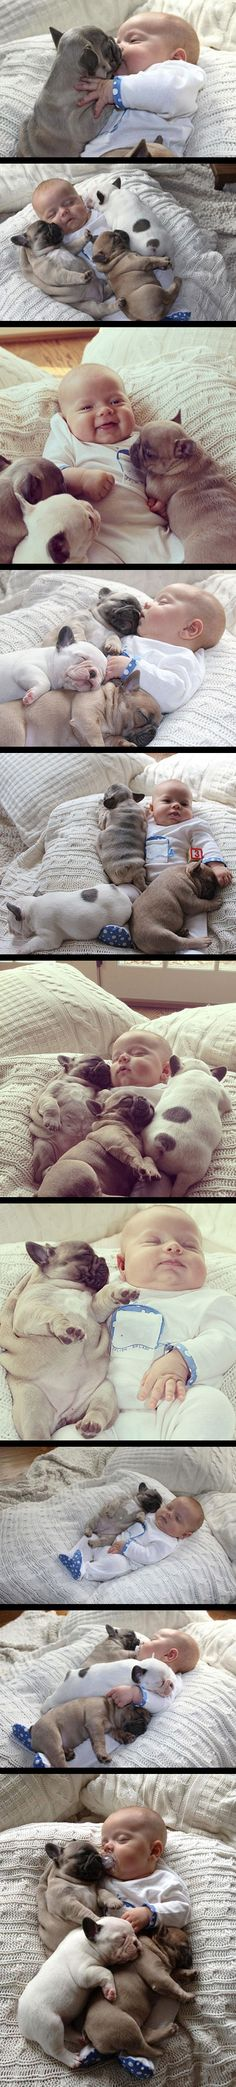 cute babies and french bulldog puppies.PUGS and BABIES! So Cute Baby, Cute Babies, Baby Animals, Funny Animals, Cute Animals, Cute Puppies, Cute Dogs, Animal Pictures, Cute Pictures